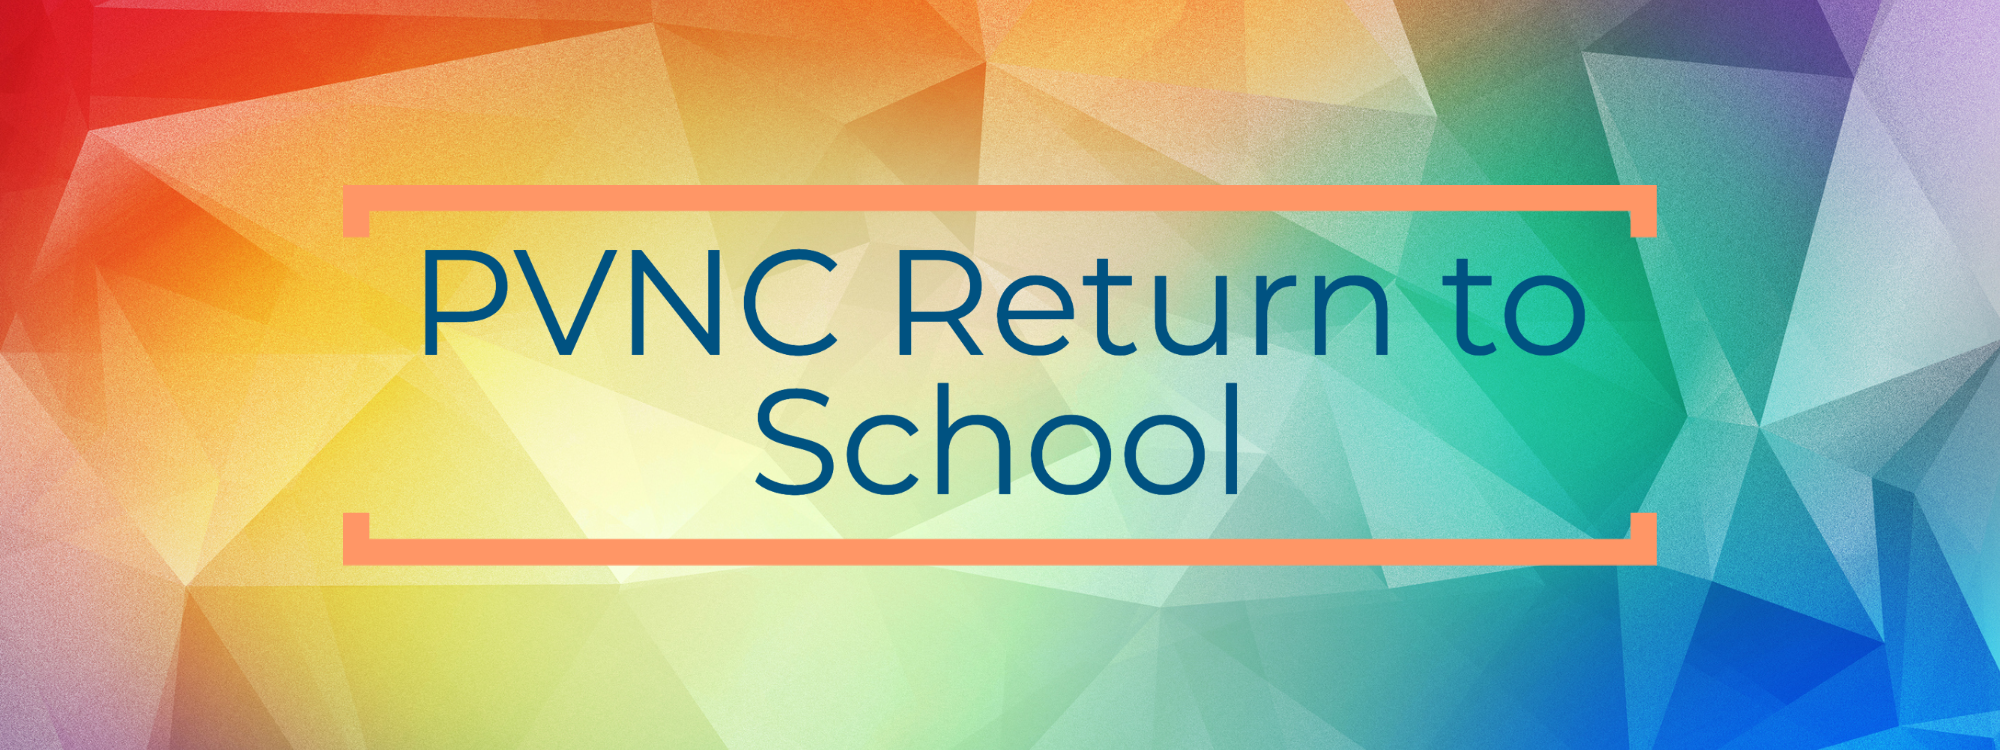 PVNC return to school